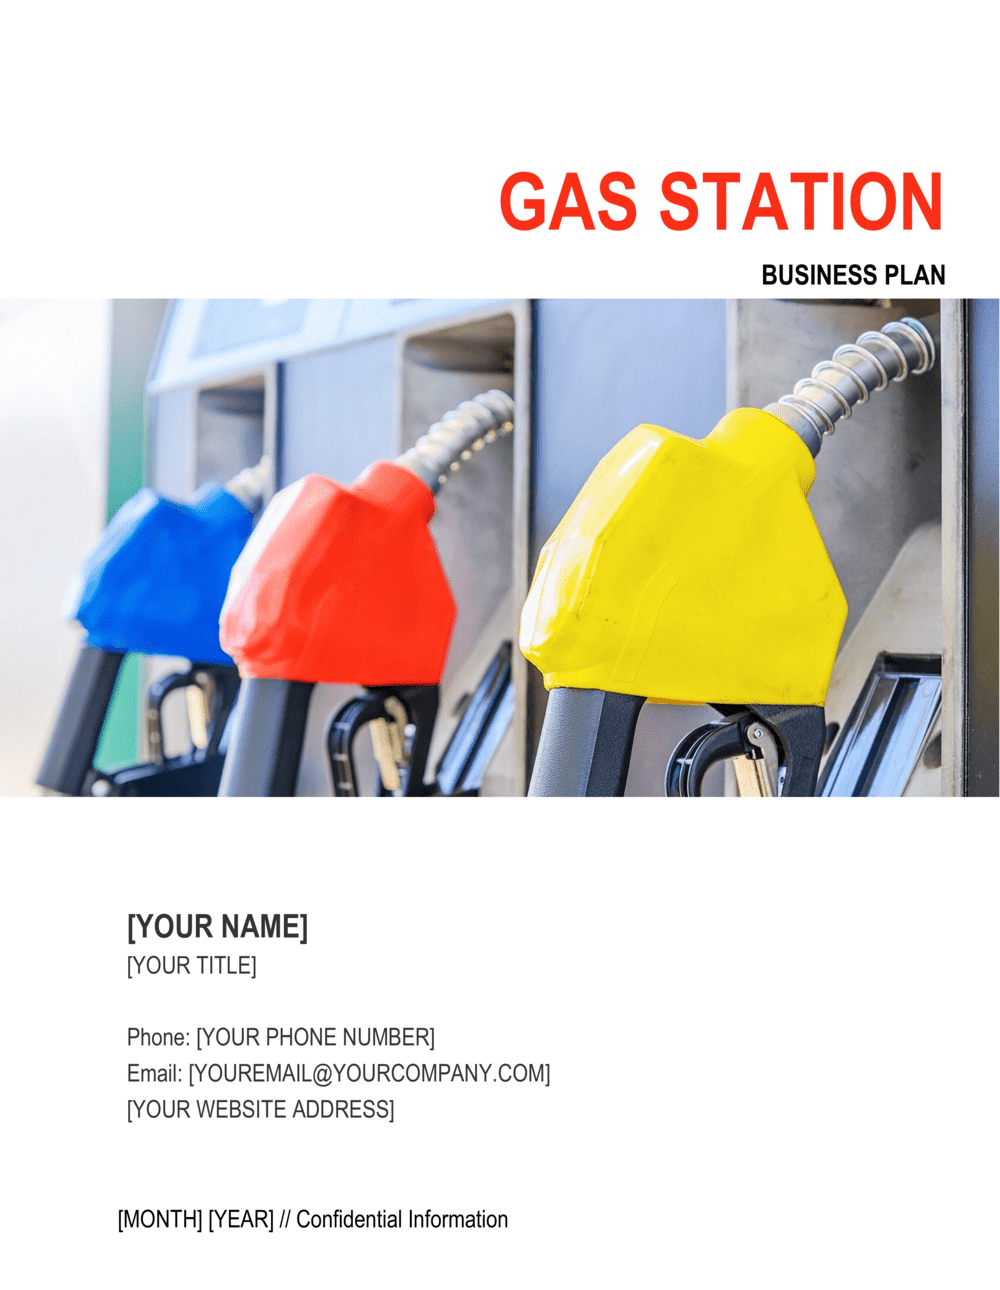 Business-in-a-Box's Gas Station Business Plan Template